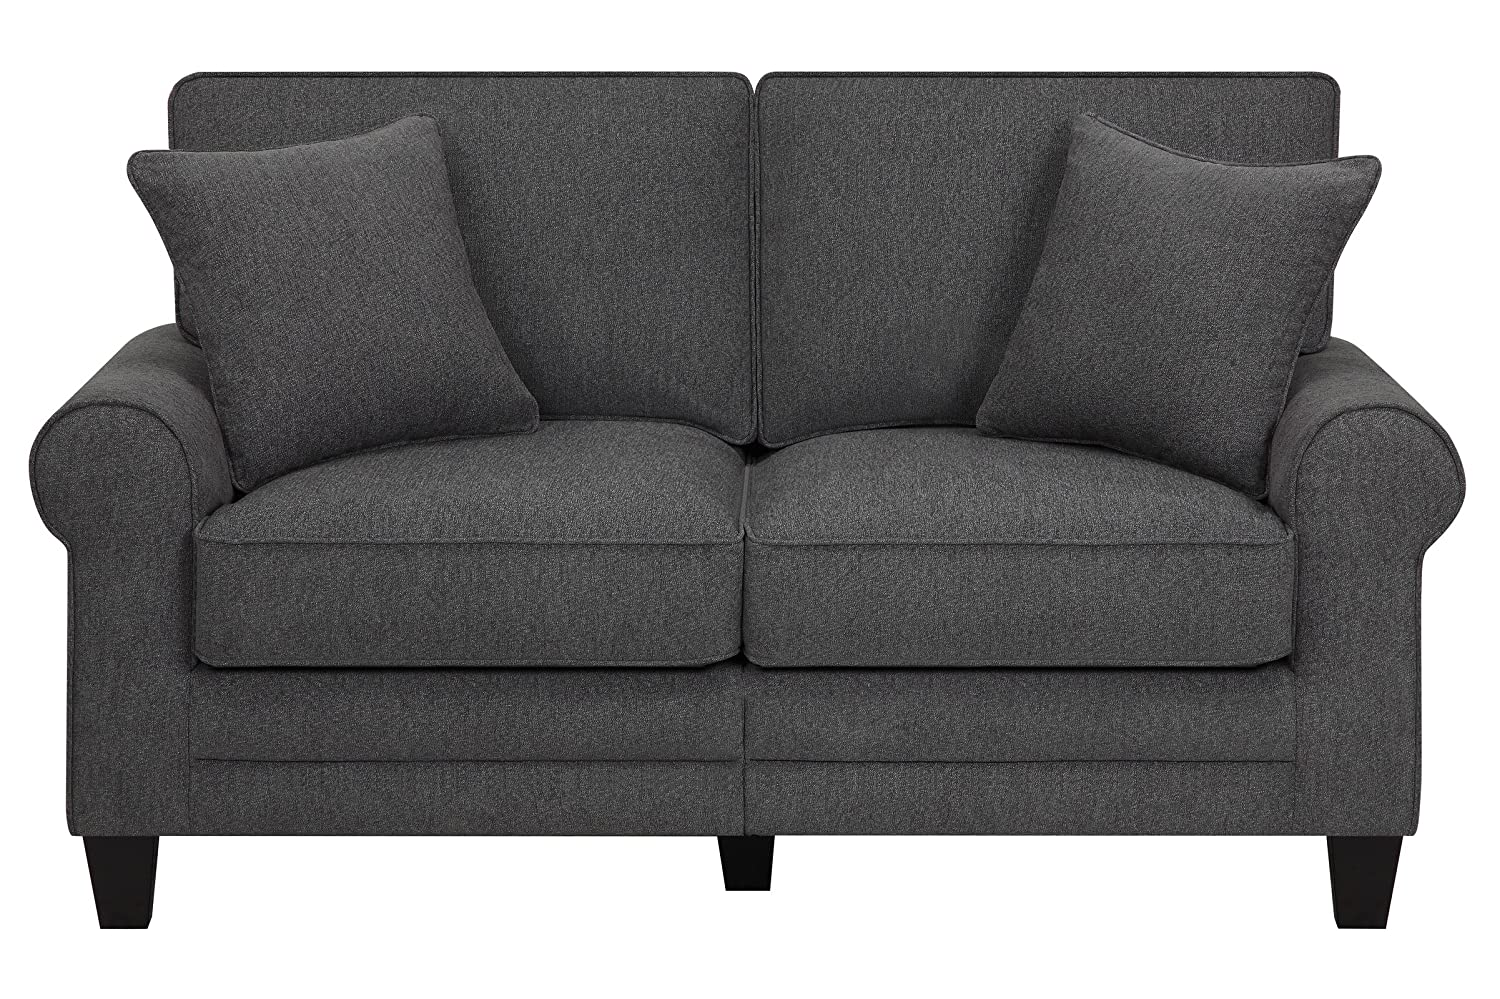 Serta® RTA Copenhagen Collection 61 Loveseat in Steeple Gray - CR46219PB